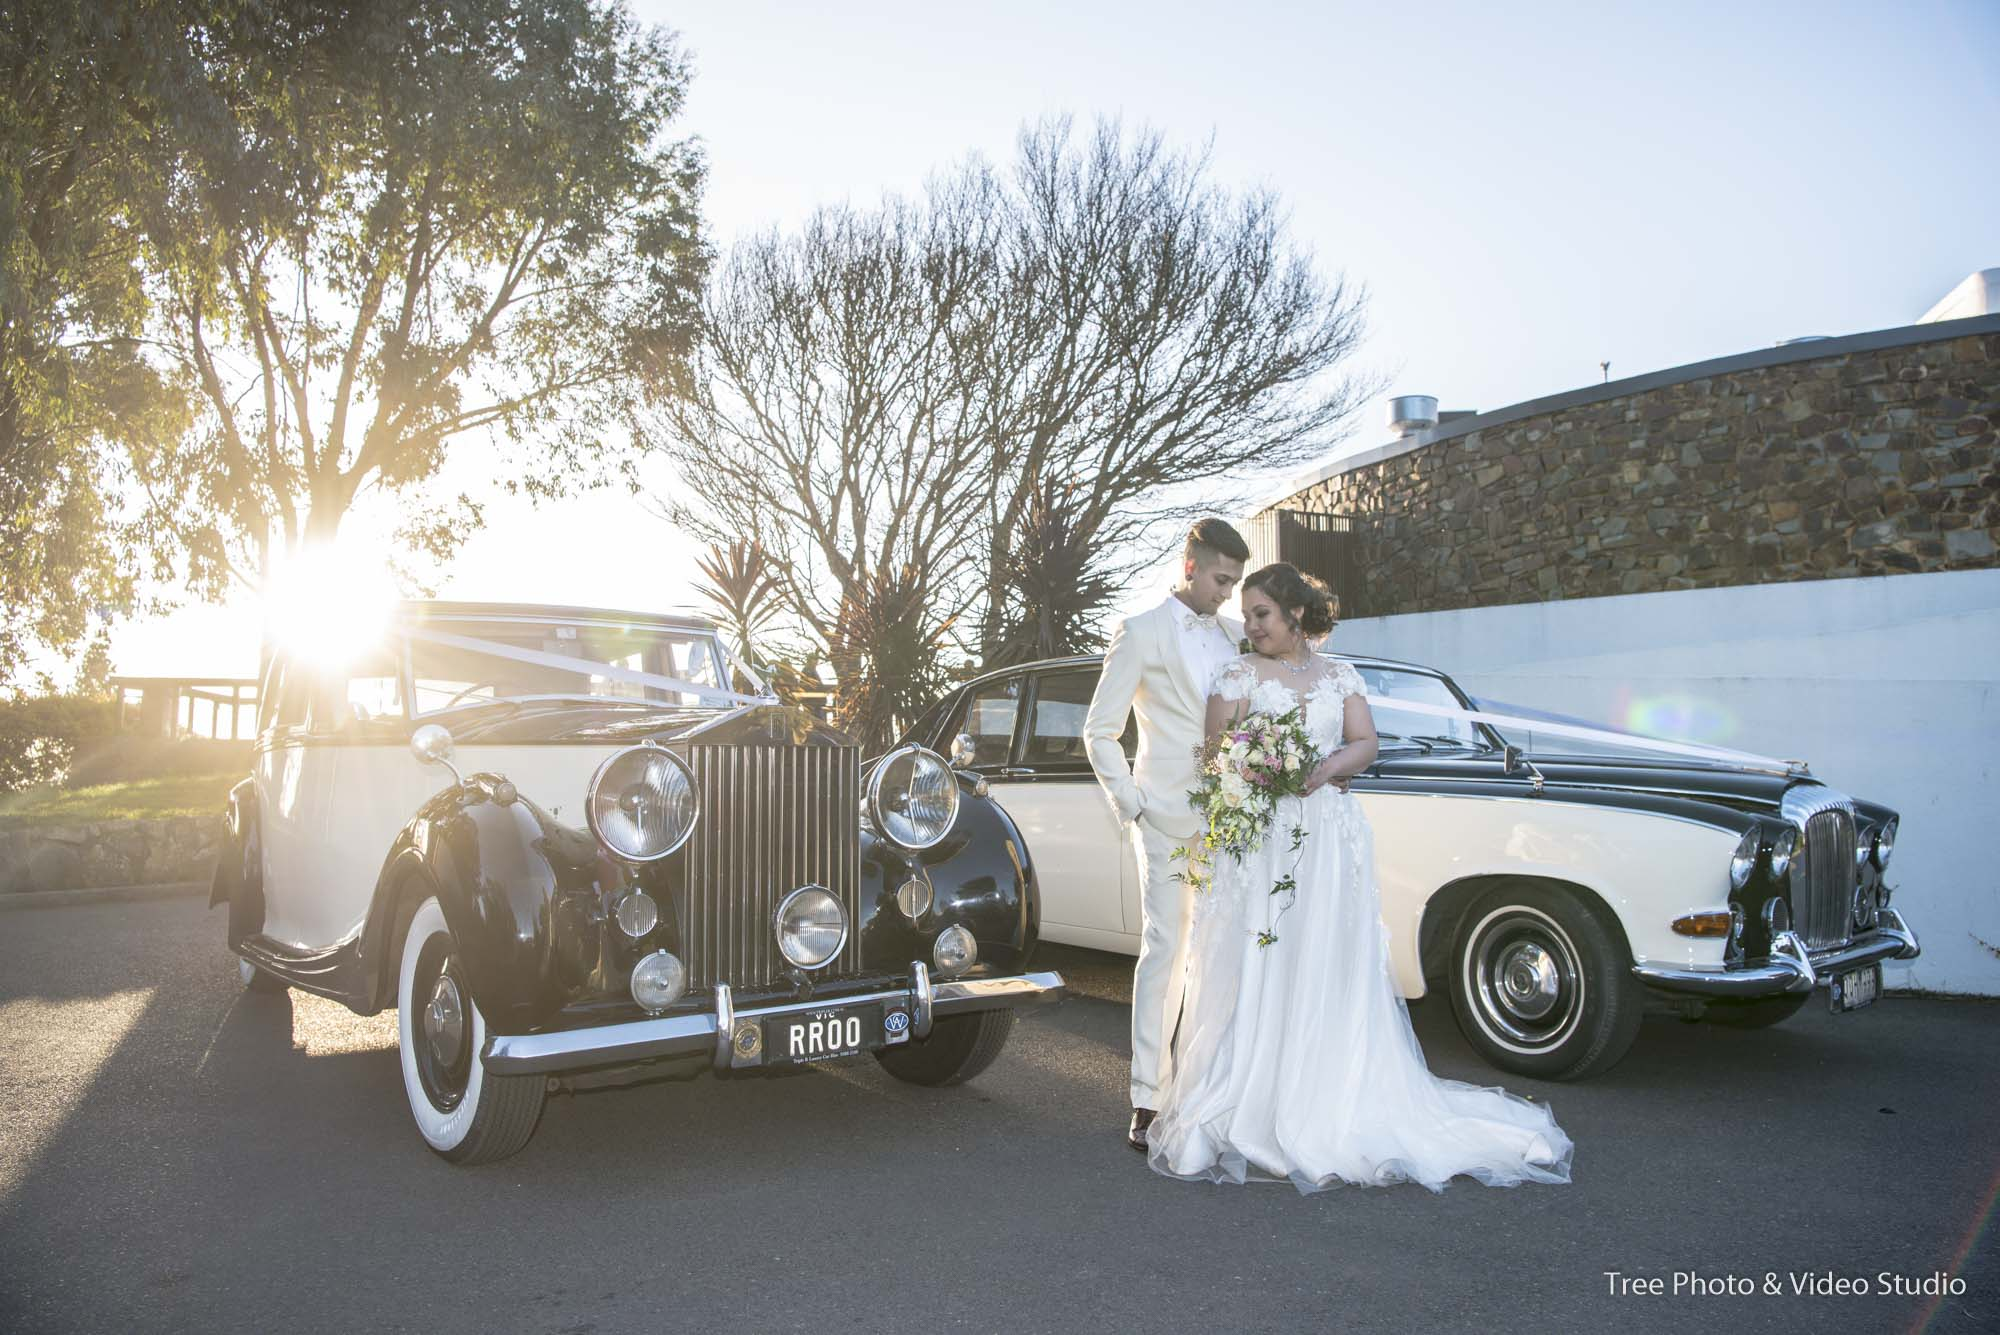 Stephanie and Nafsy's Wedding at SkyHigh Mount Dandenong